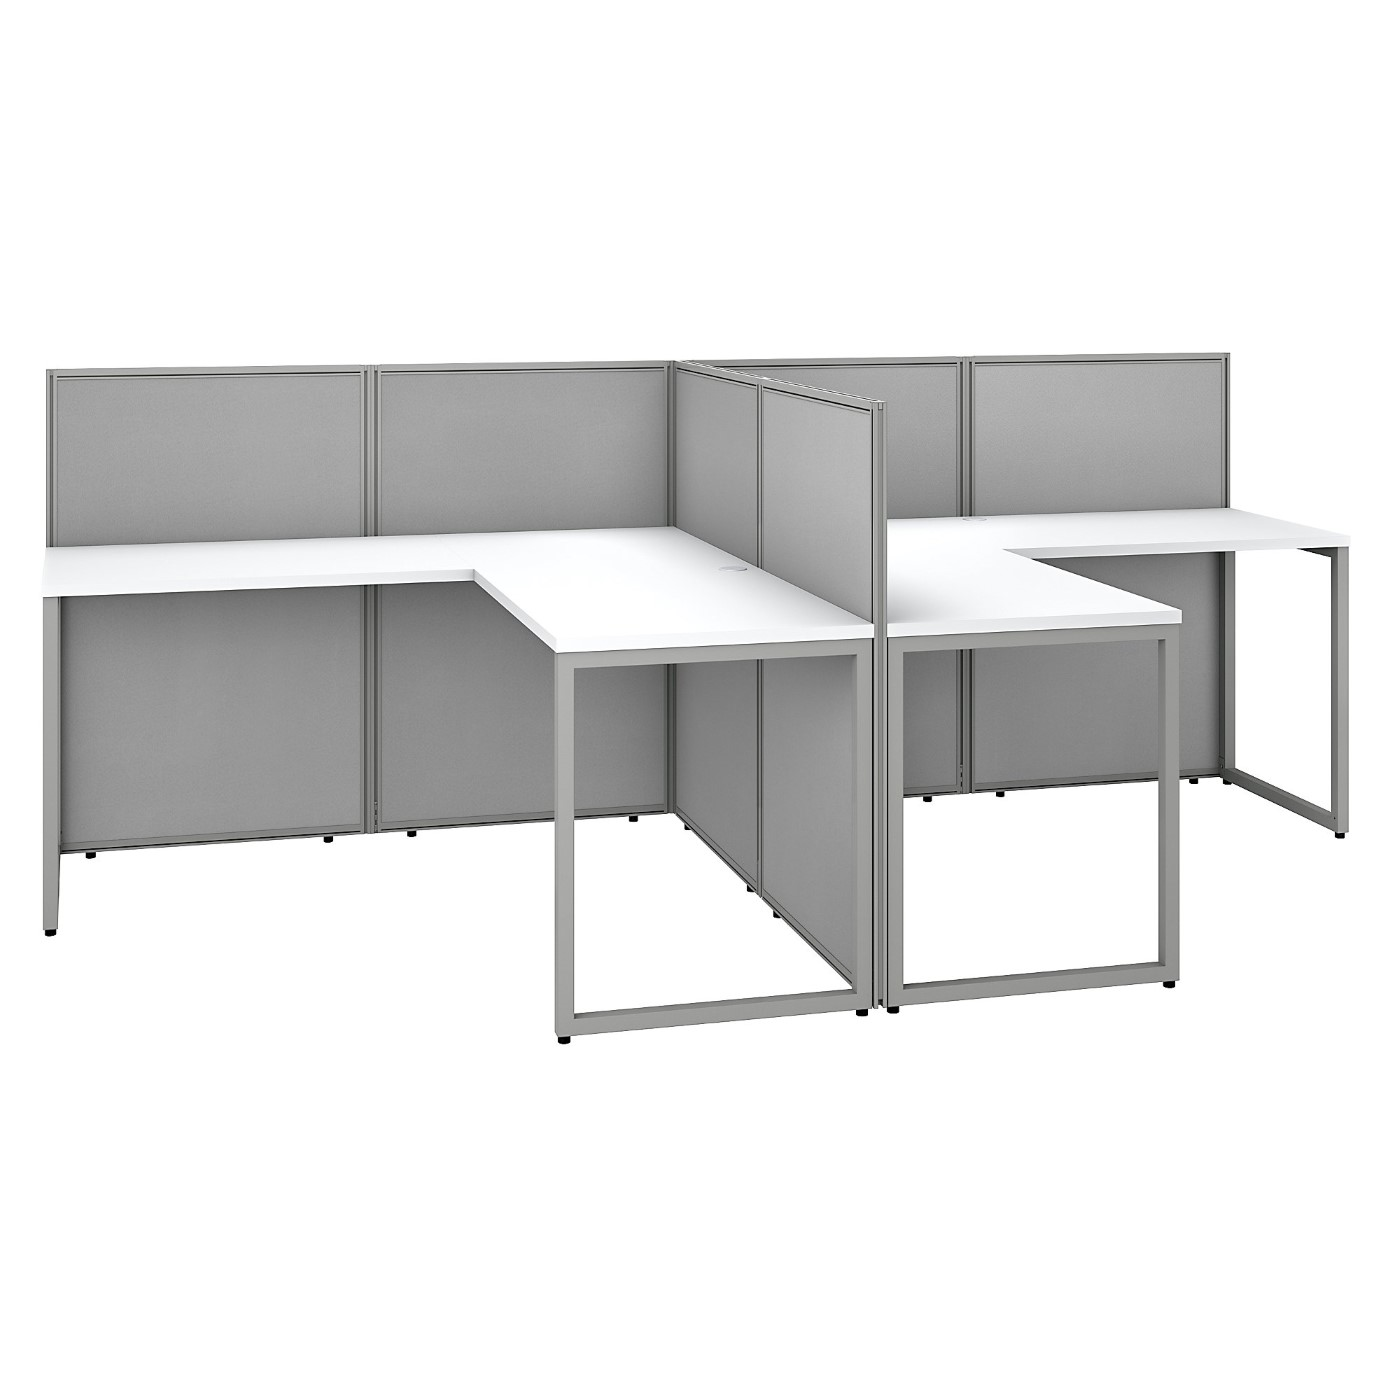 BUSH BUSINESS FURNITURE EASY OFFICE 60W 2 PERSON L SHAPED CUBICLE DESK WORKSTATION WITH 45H PANELS. FREE SHIPPING SALE DEDUCT 10% MORE ENTER '10percent' IN COUPON CODE BOX WHILE CHECKING OUT. ENDS 5-31-20.